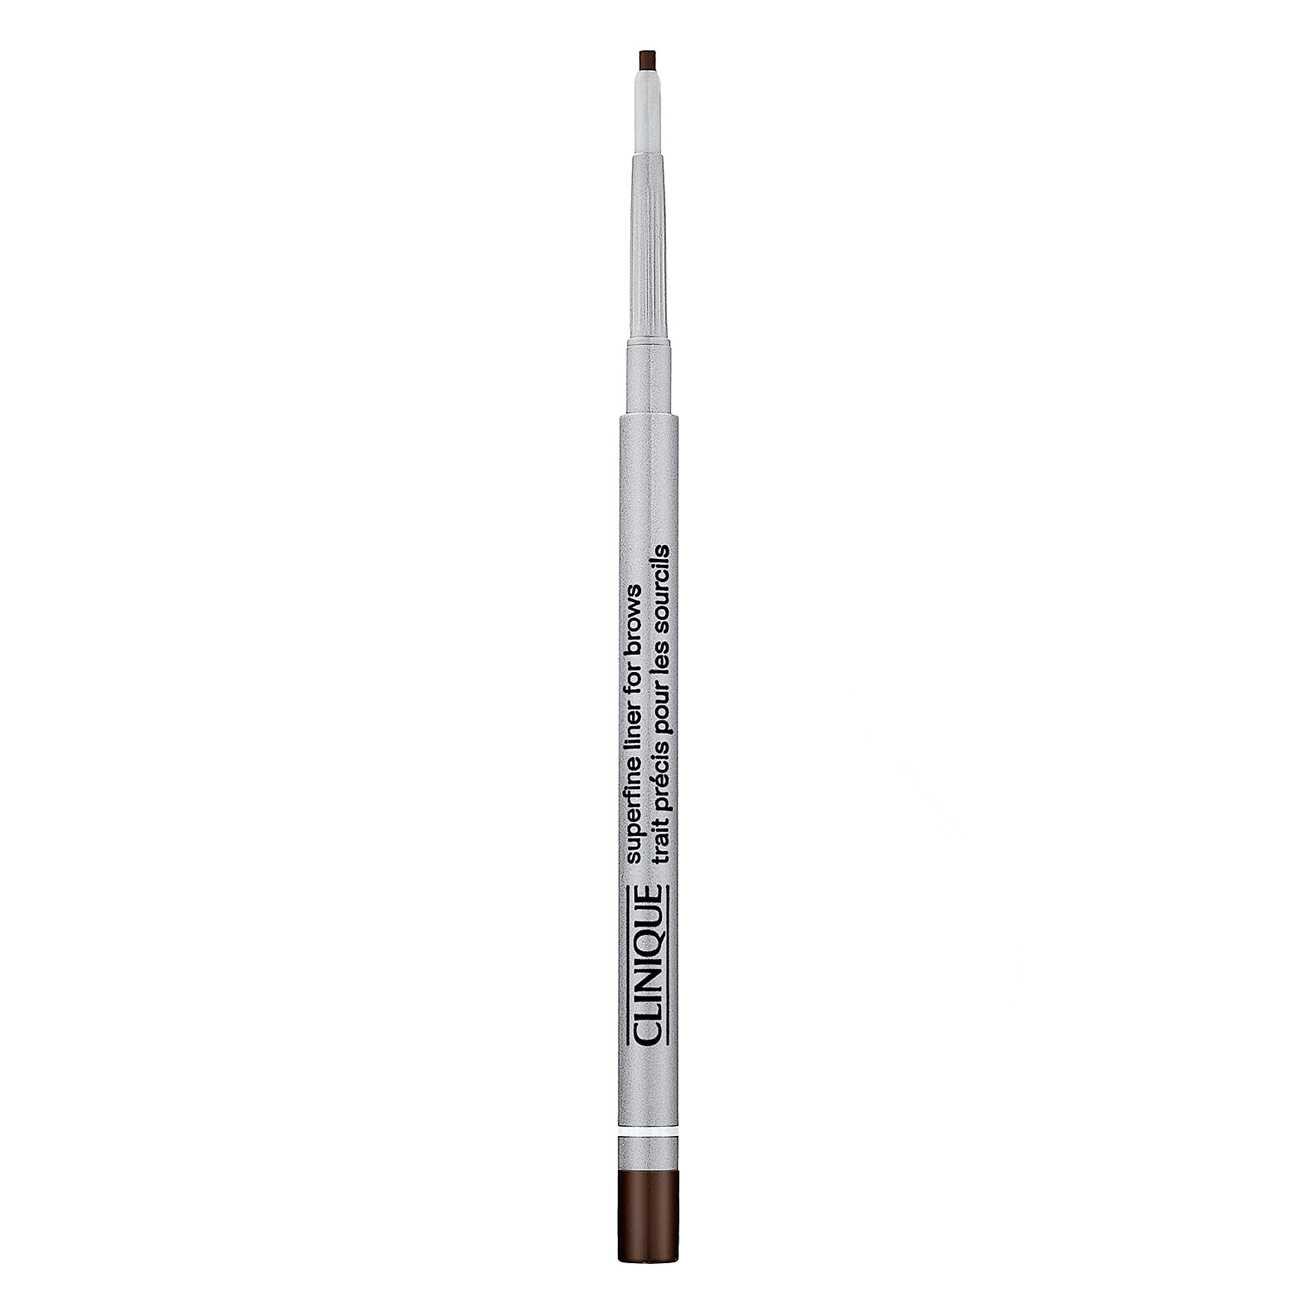 SUPERFINE LINE FOR BROWS 8 G DEEP BROWN 3 imagine produs